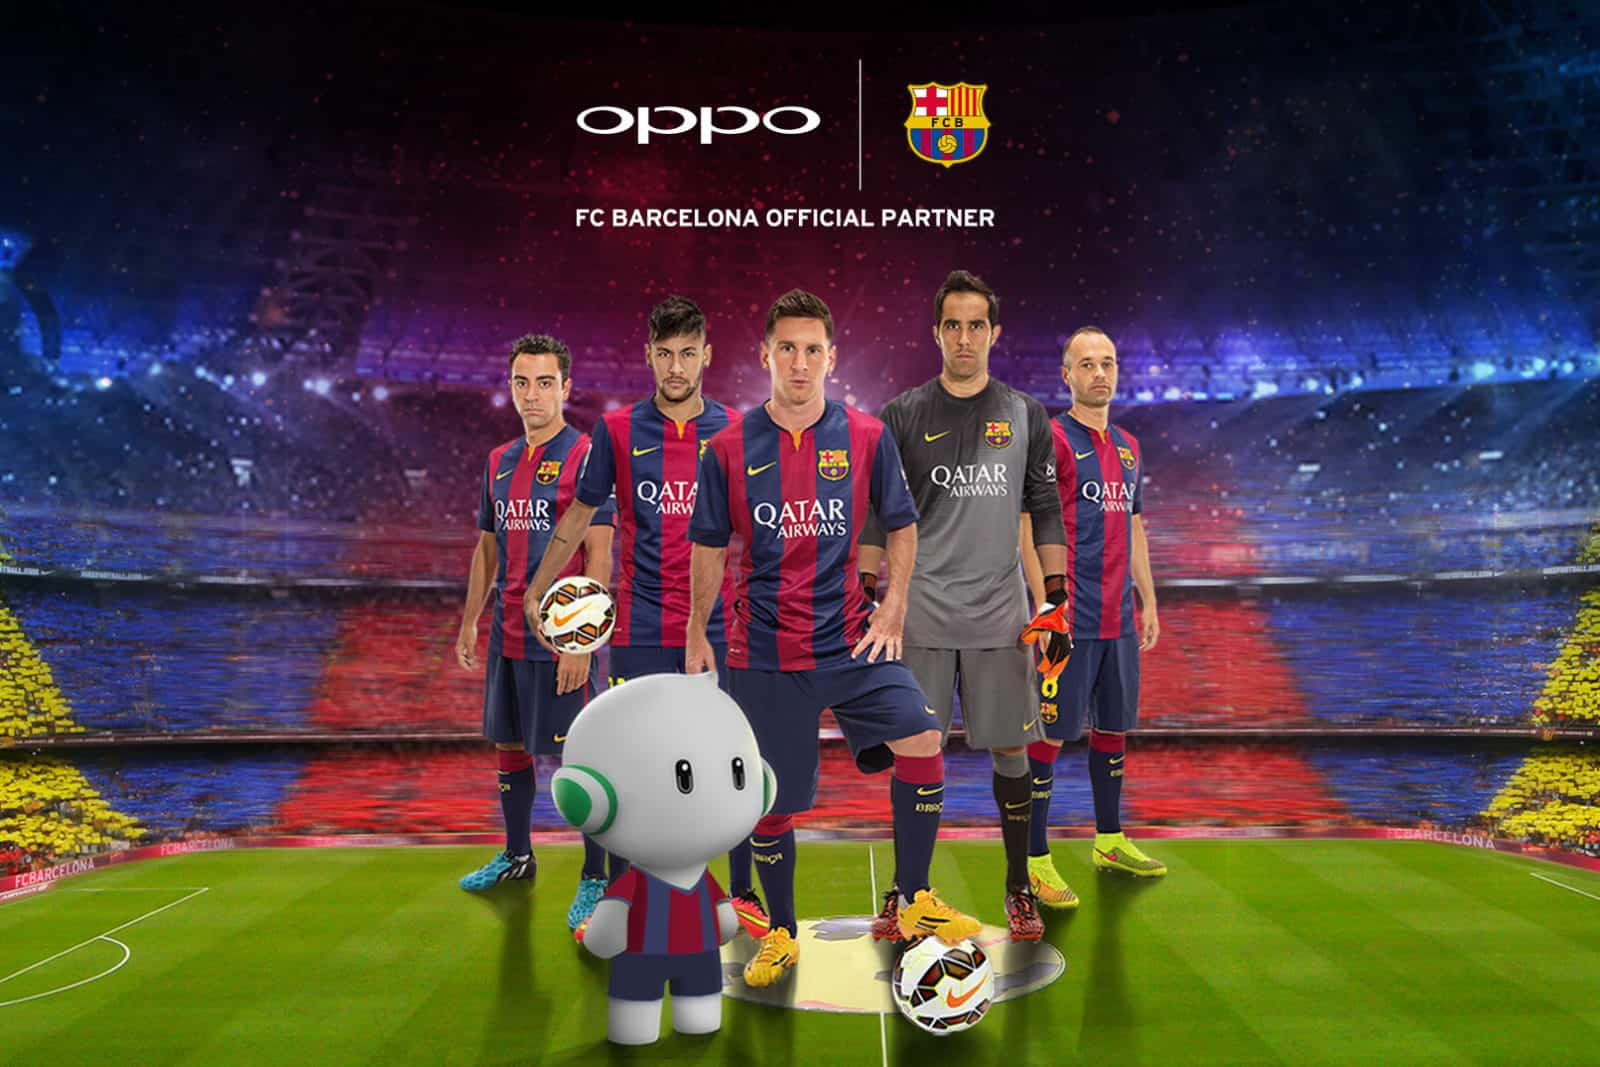 FC Barcelona and Oppo partnership_2